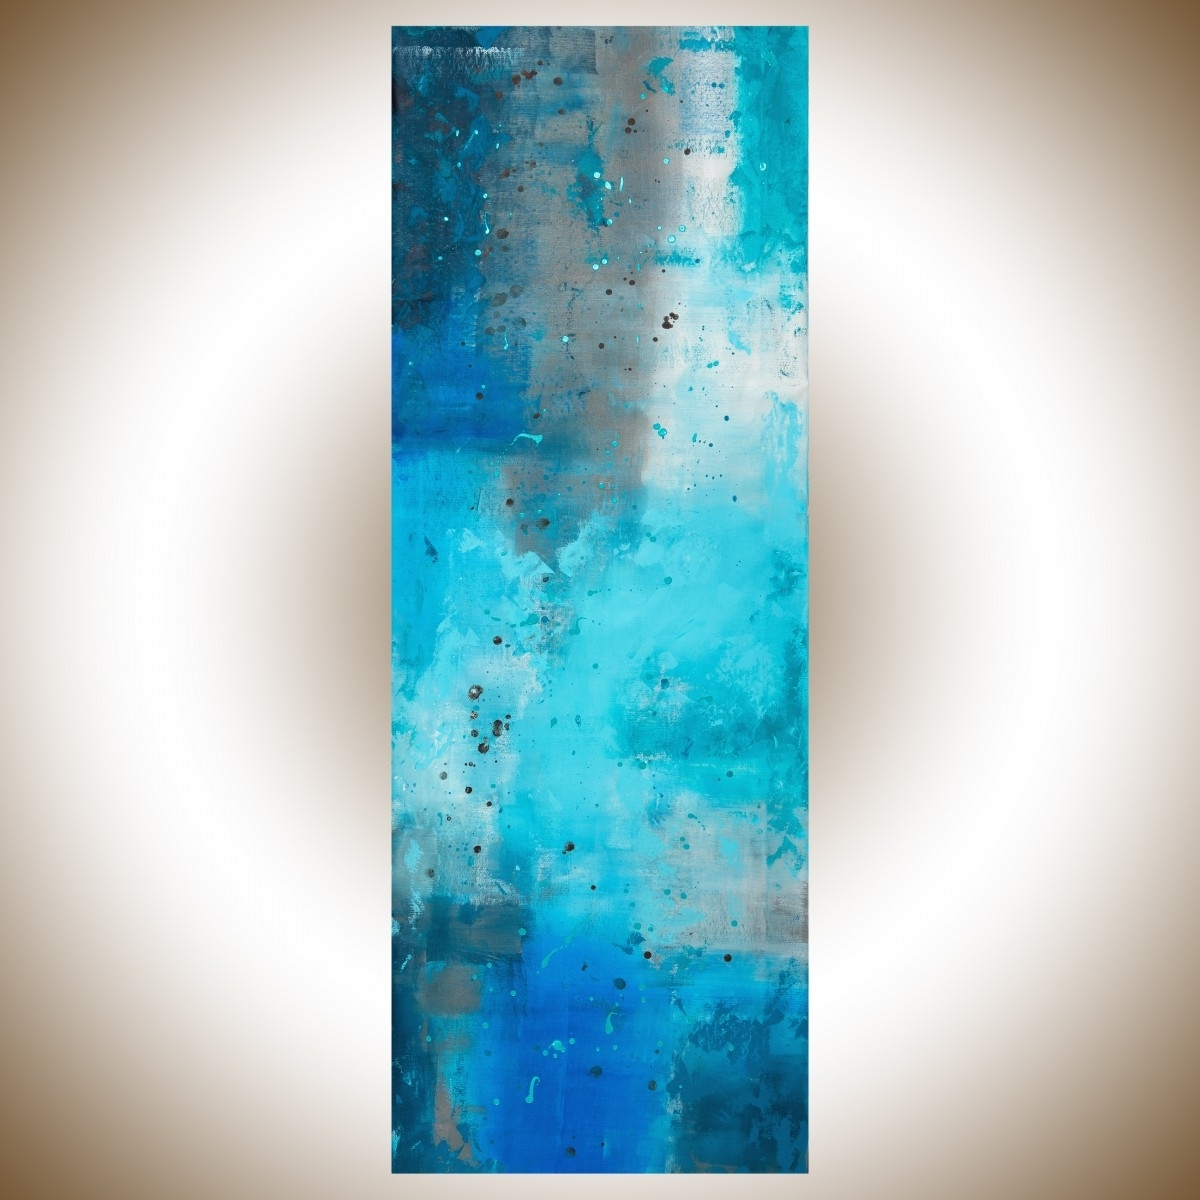 "The Mistqiqigallery 70""x24"" Un Stretched Canvas Original Pertaining To Recent Turquoise And Black Wall Art (View 7 of 15)"